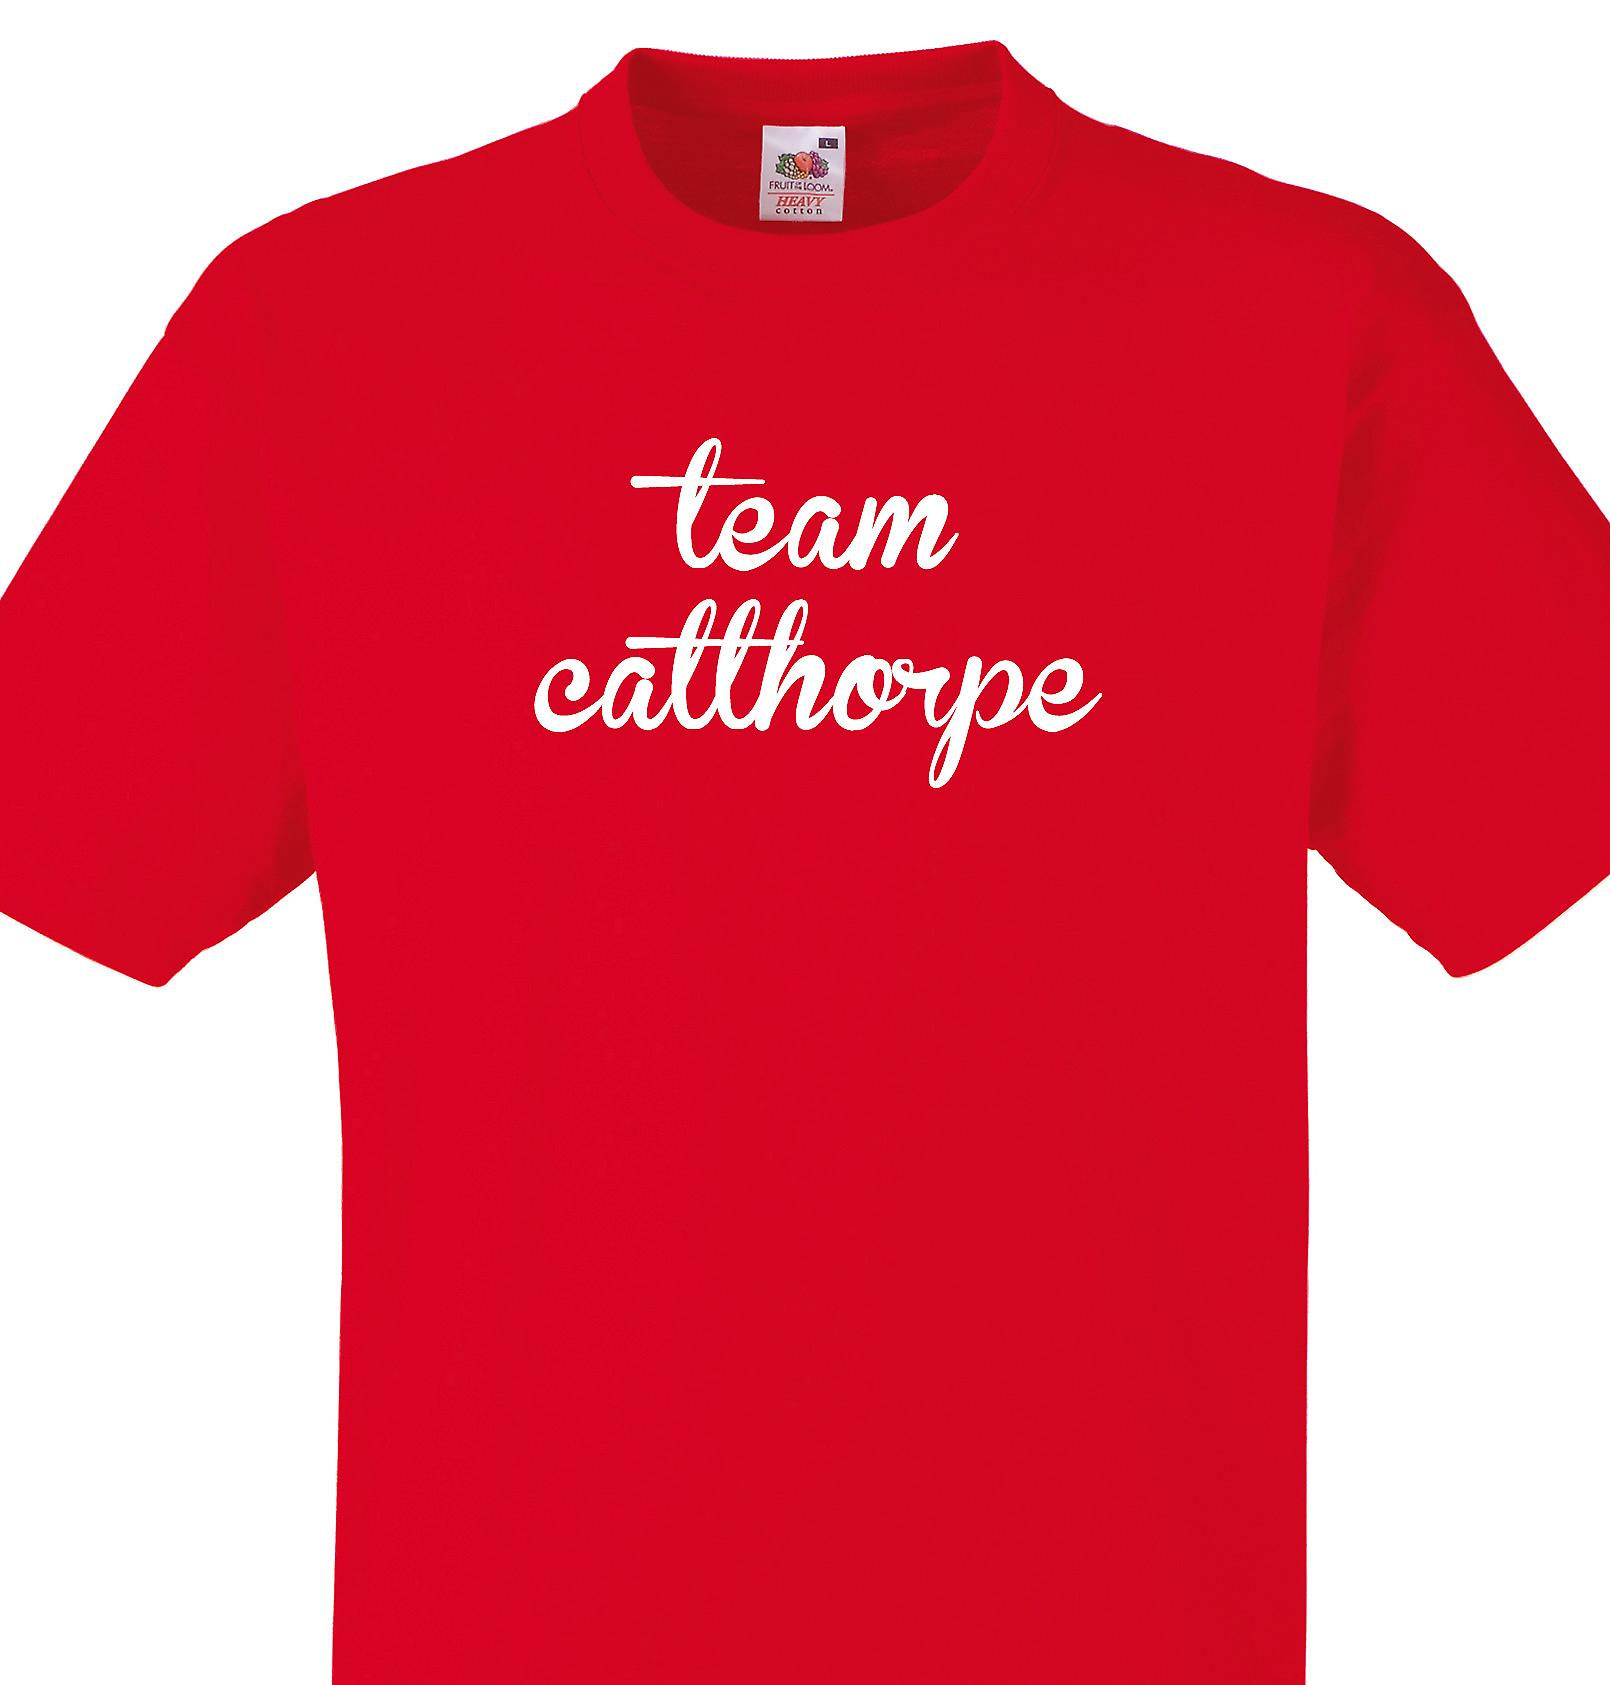 Team Catthorpe Red T shirt